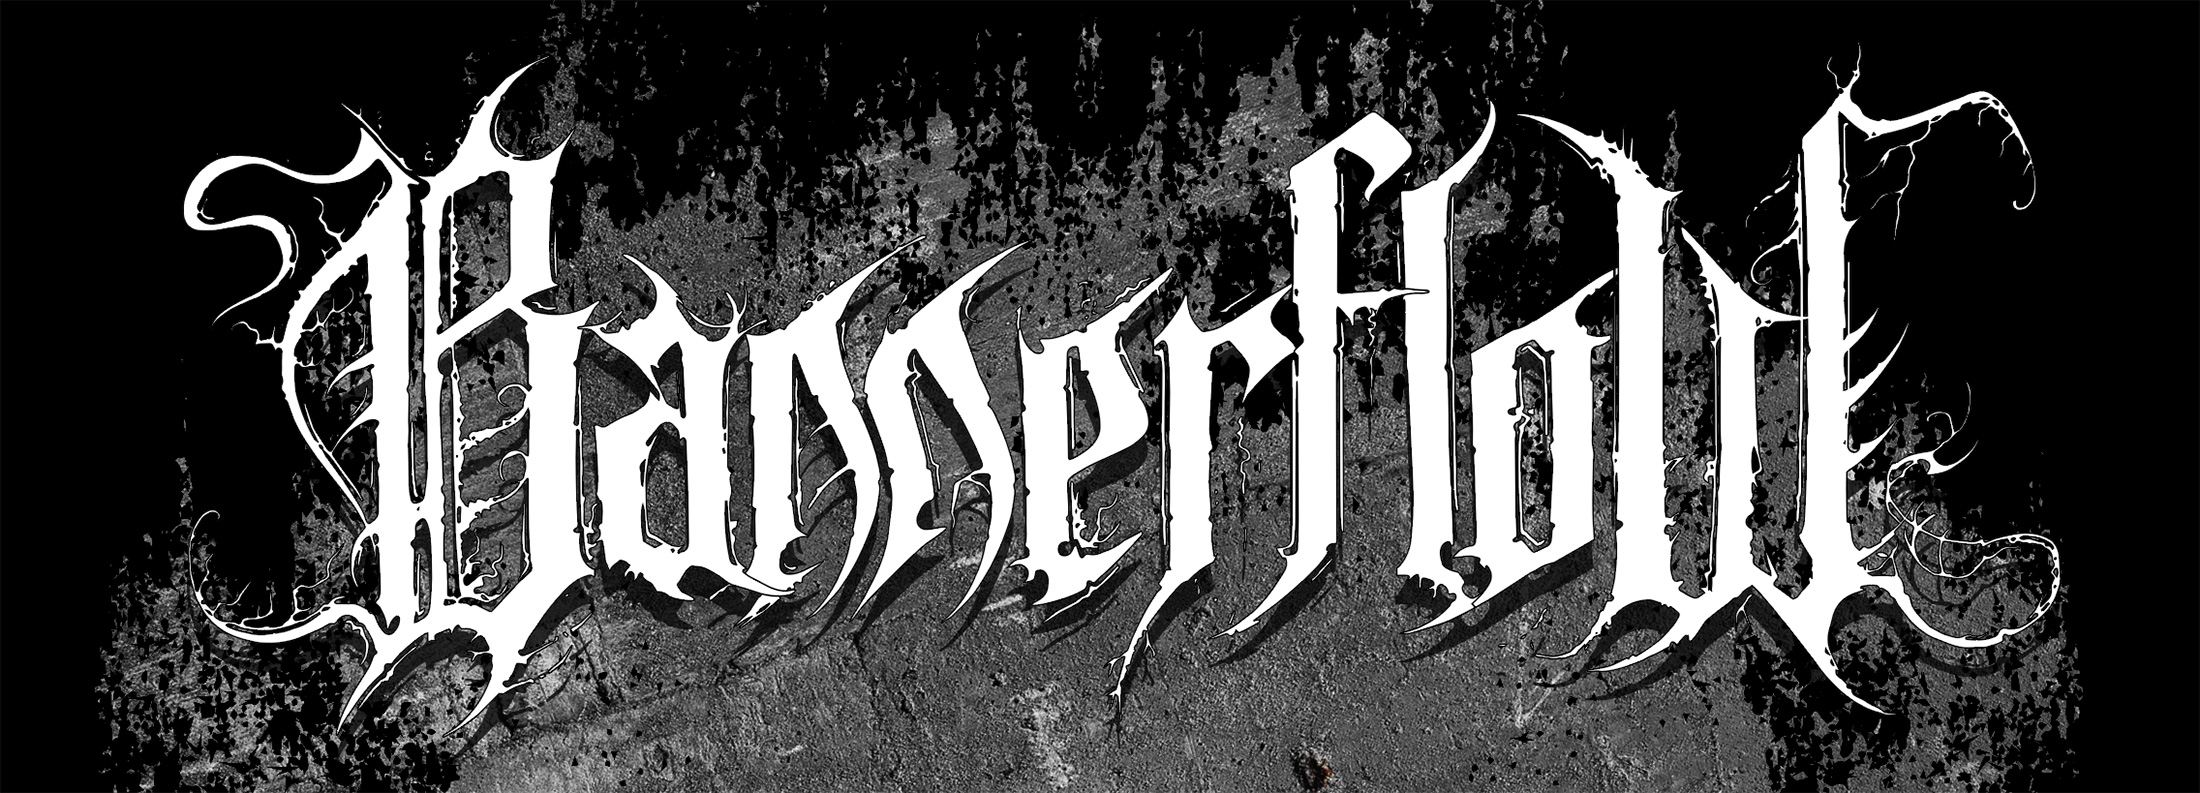 The custom logo (with a black metal twist) was one of the most fun parts of this project.